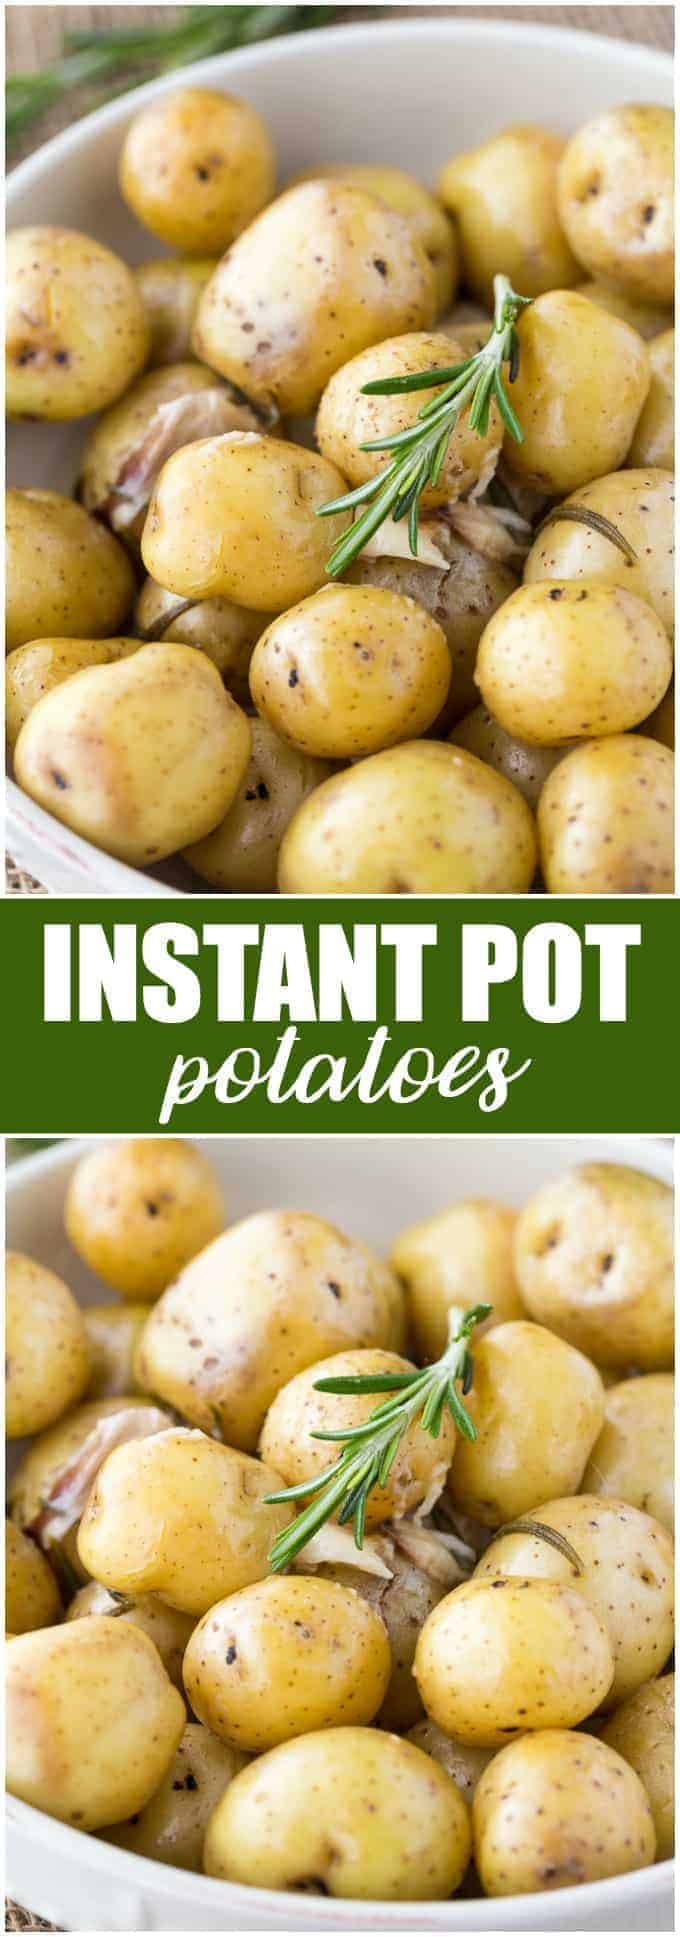 The Instant Pot is a modern pressure cooker that will cook your meals in a fraction of the time. Try my Instant Pot potatoes recipe for tender and buttery potatoes every time. #potato #smallpotatoes #instantpot #pressurecooker #sidedish #recipe